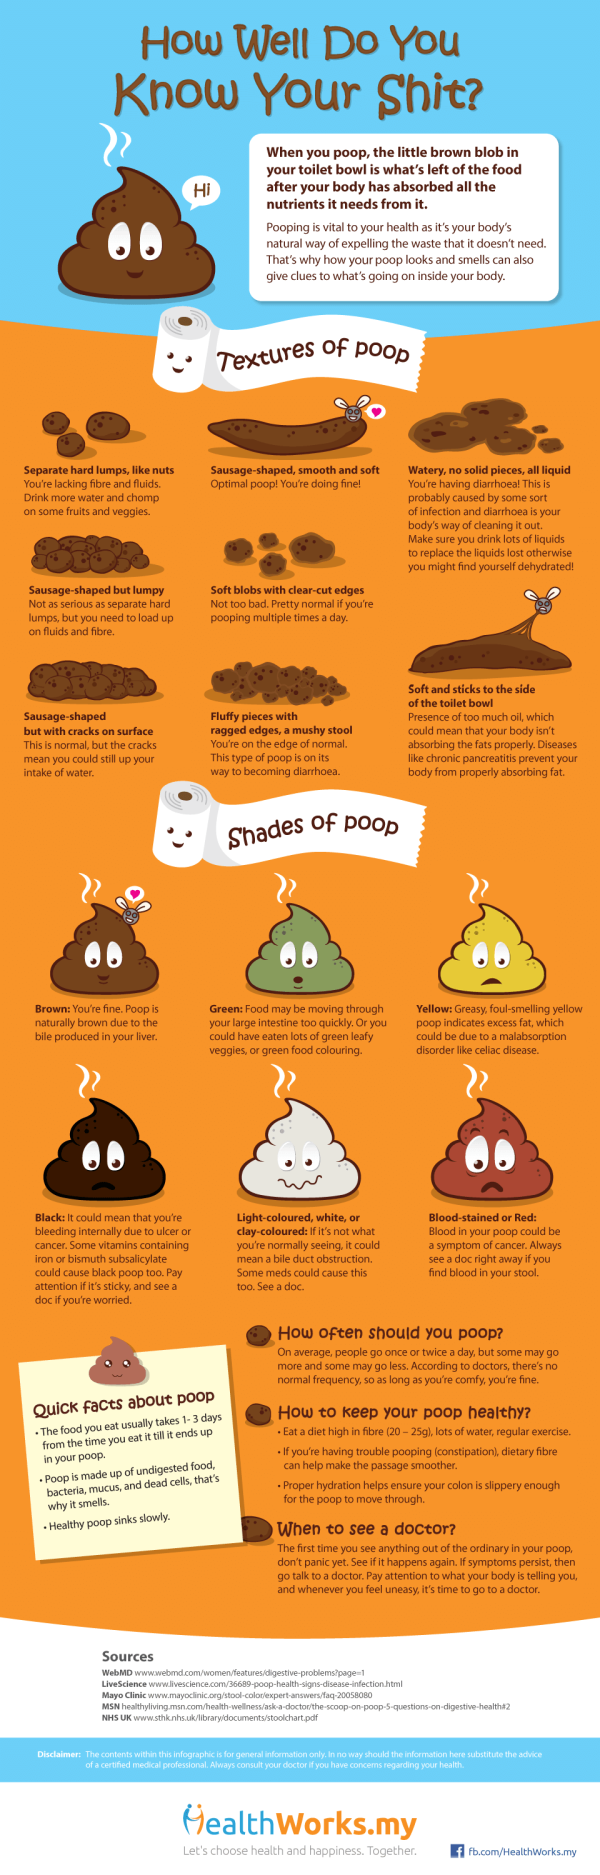 How Well Do You Know Your Shit? infographic